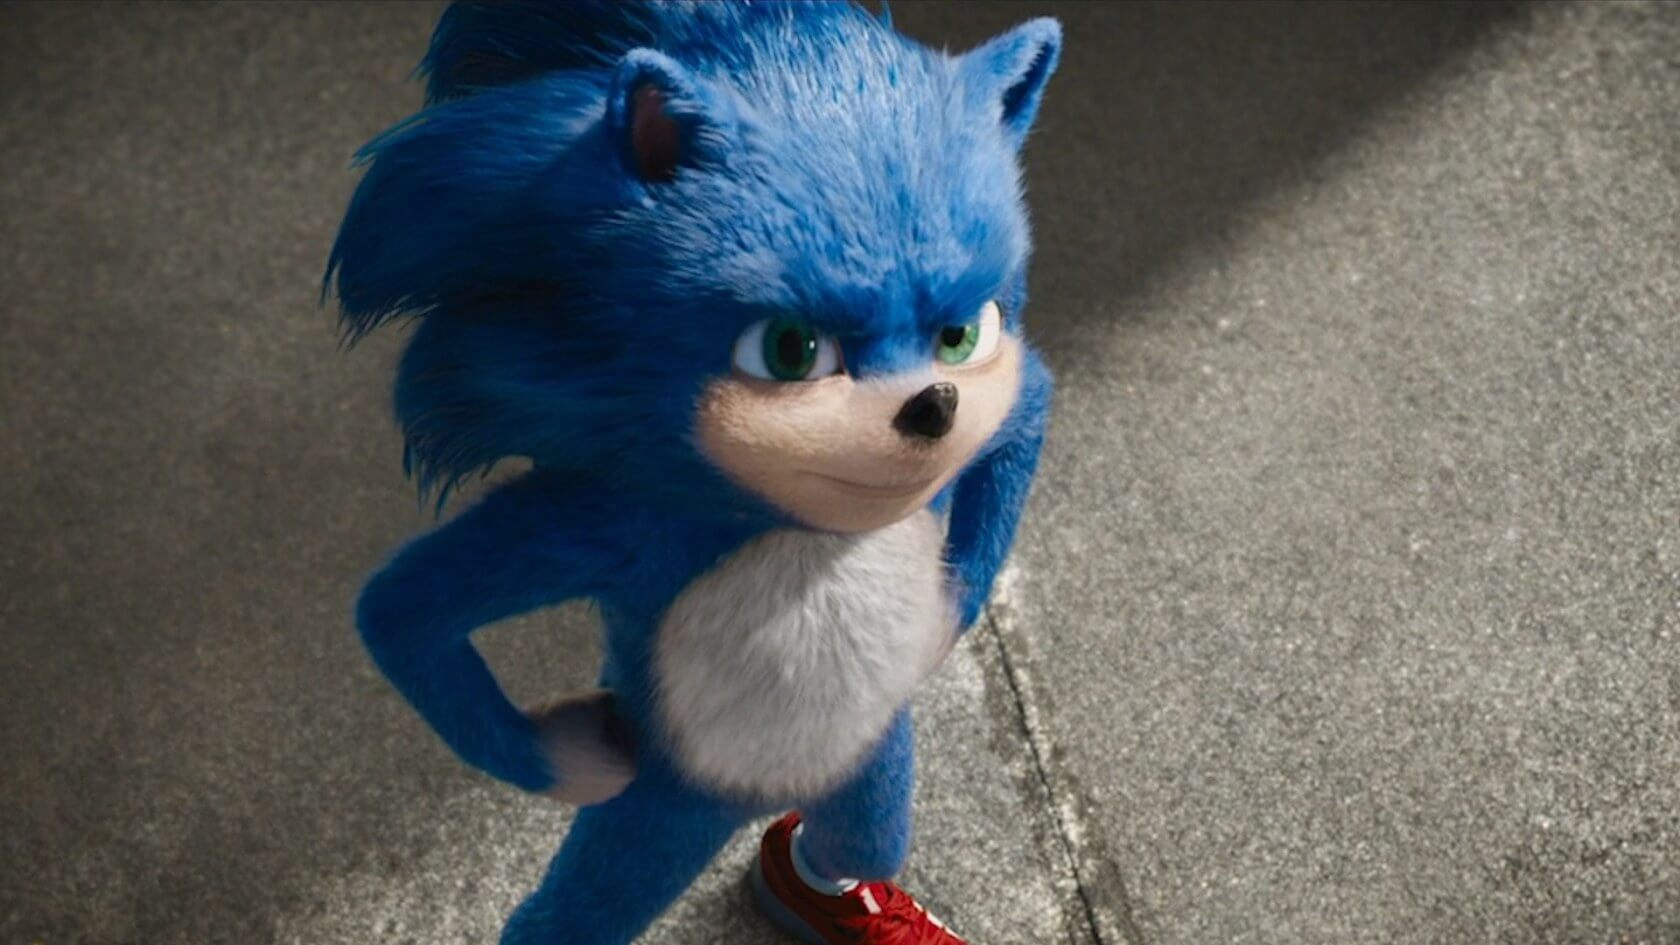 Sonic The Hedgehog movie director announces three-month delay to make Sonic look 'just right'